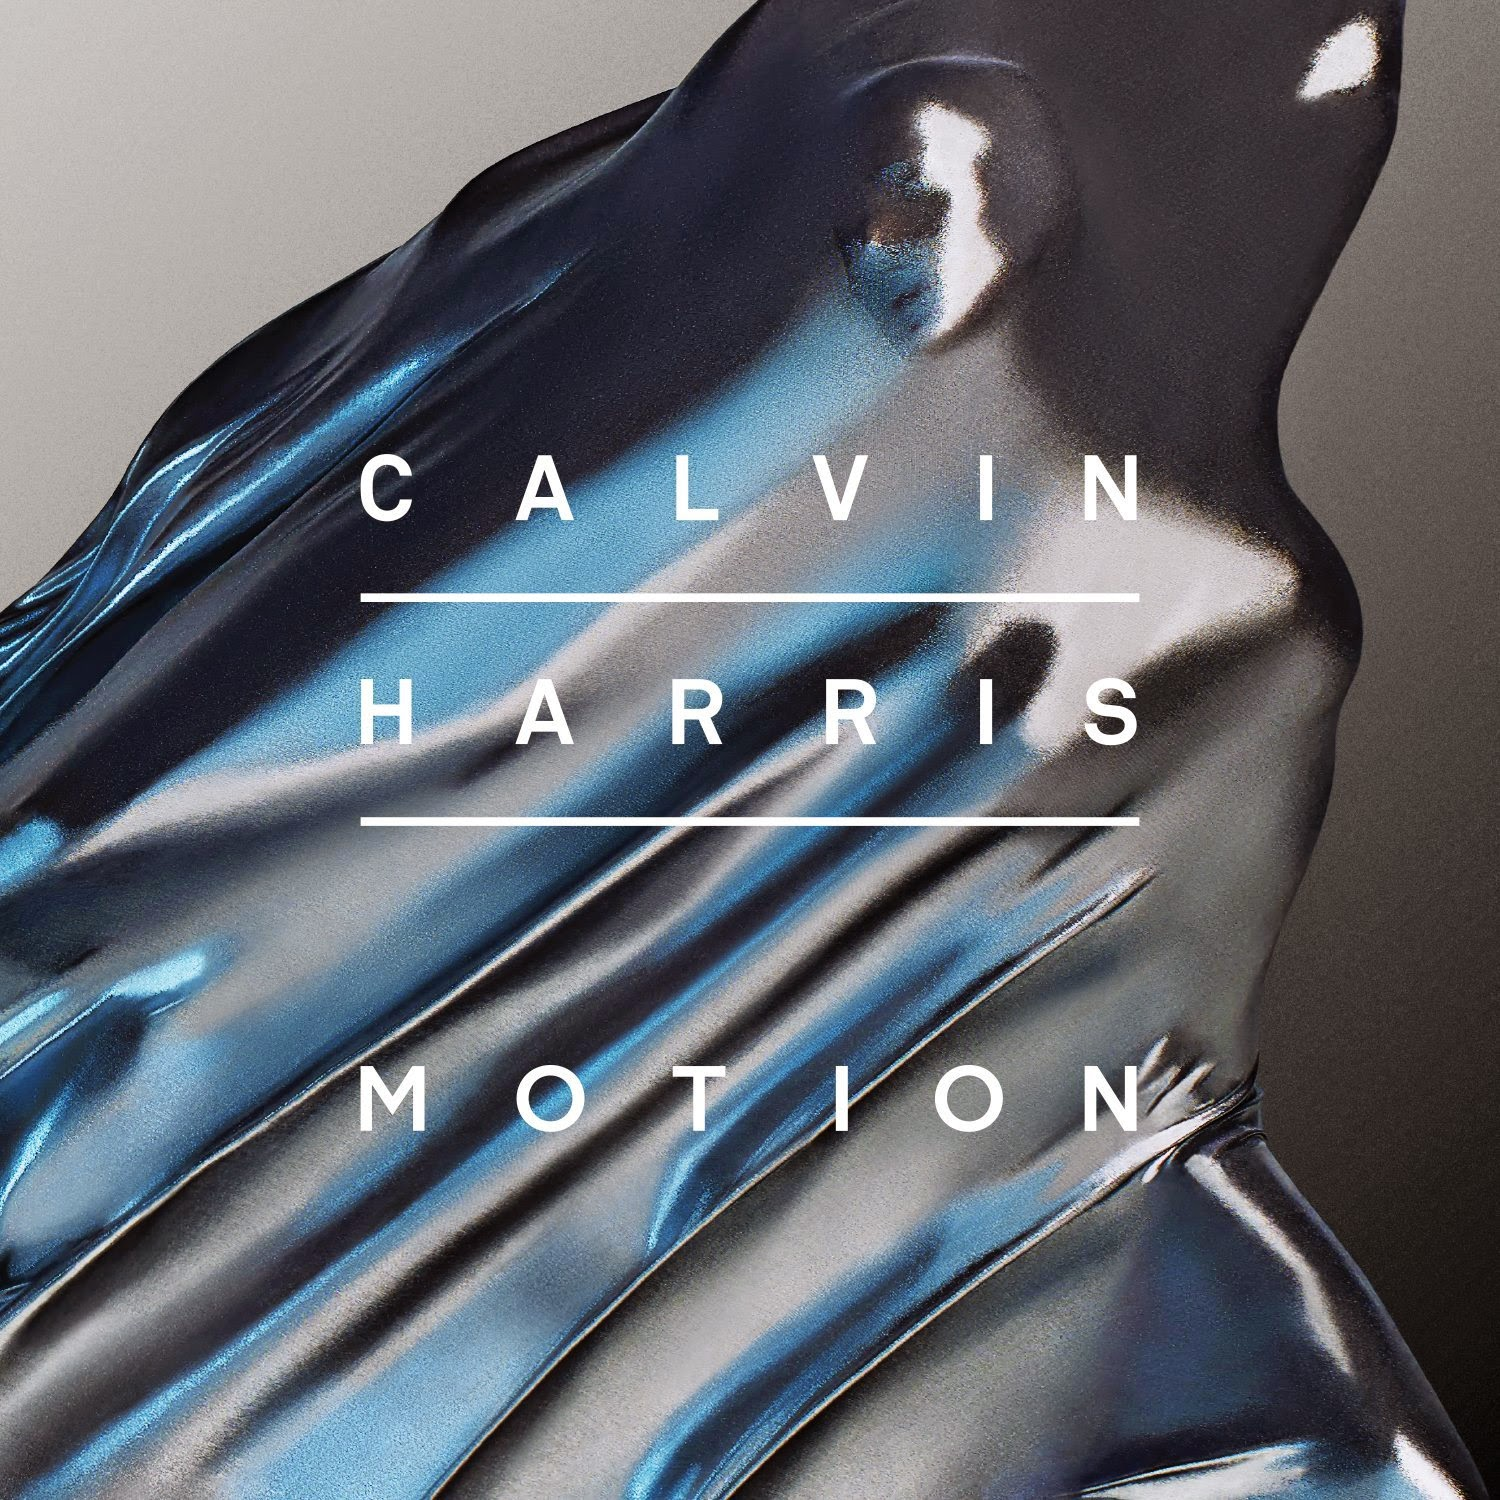 Calvin Harris 2014 Album Motion